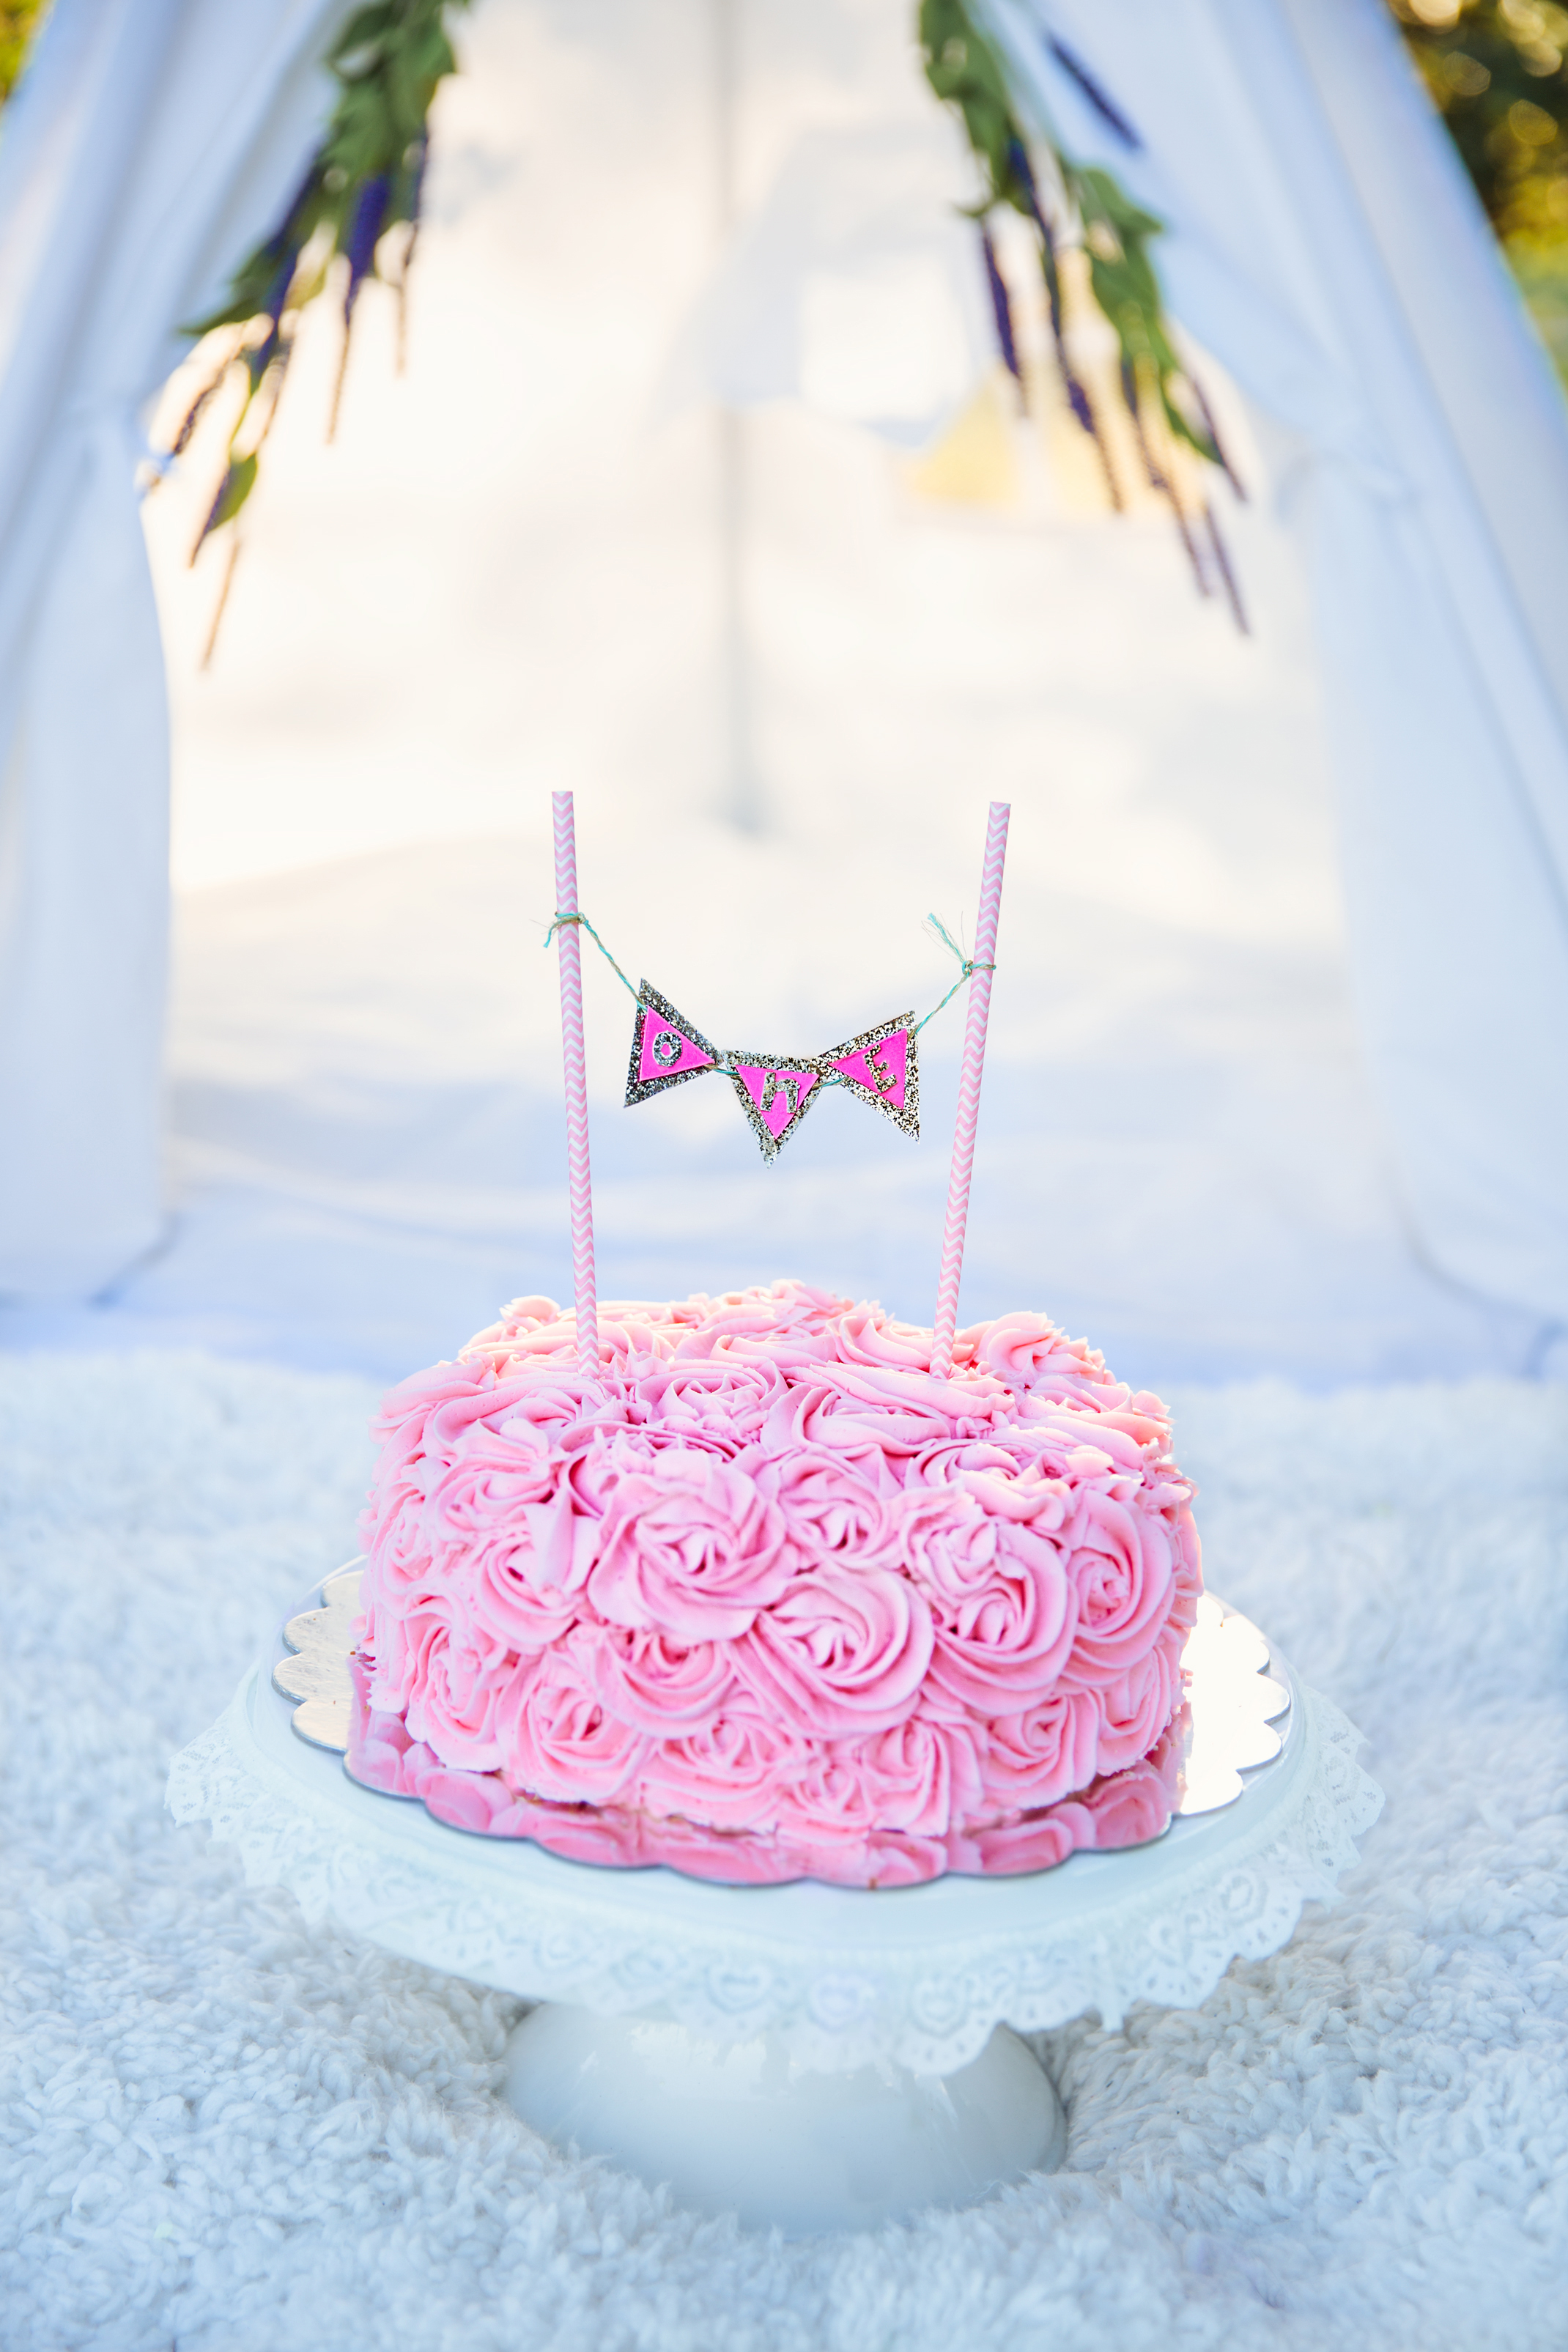 piped roses on cake with DIY cake topper